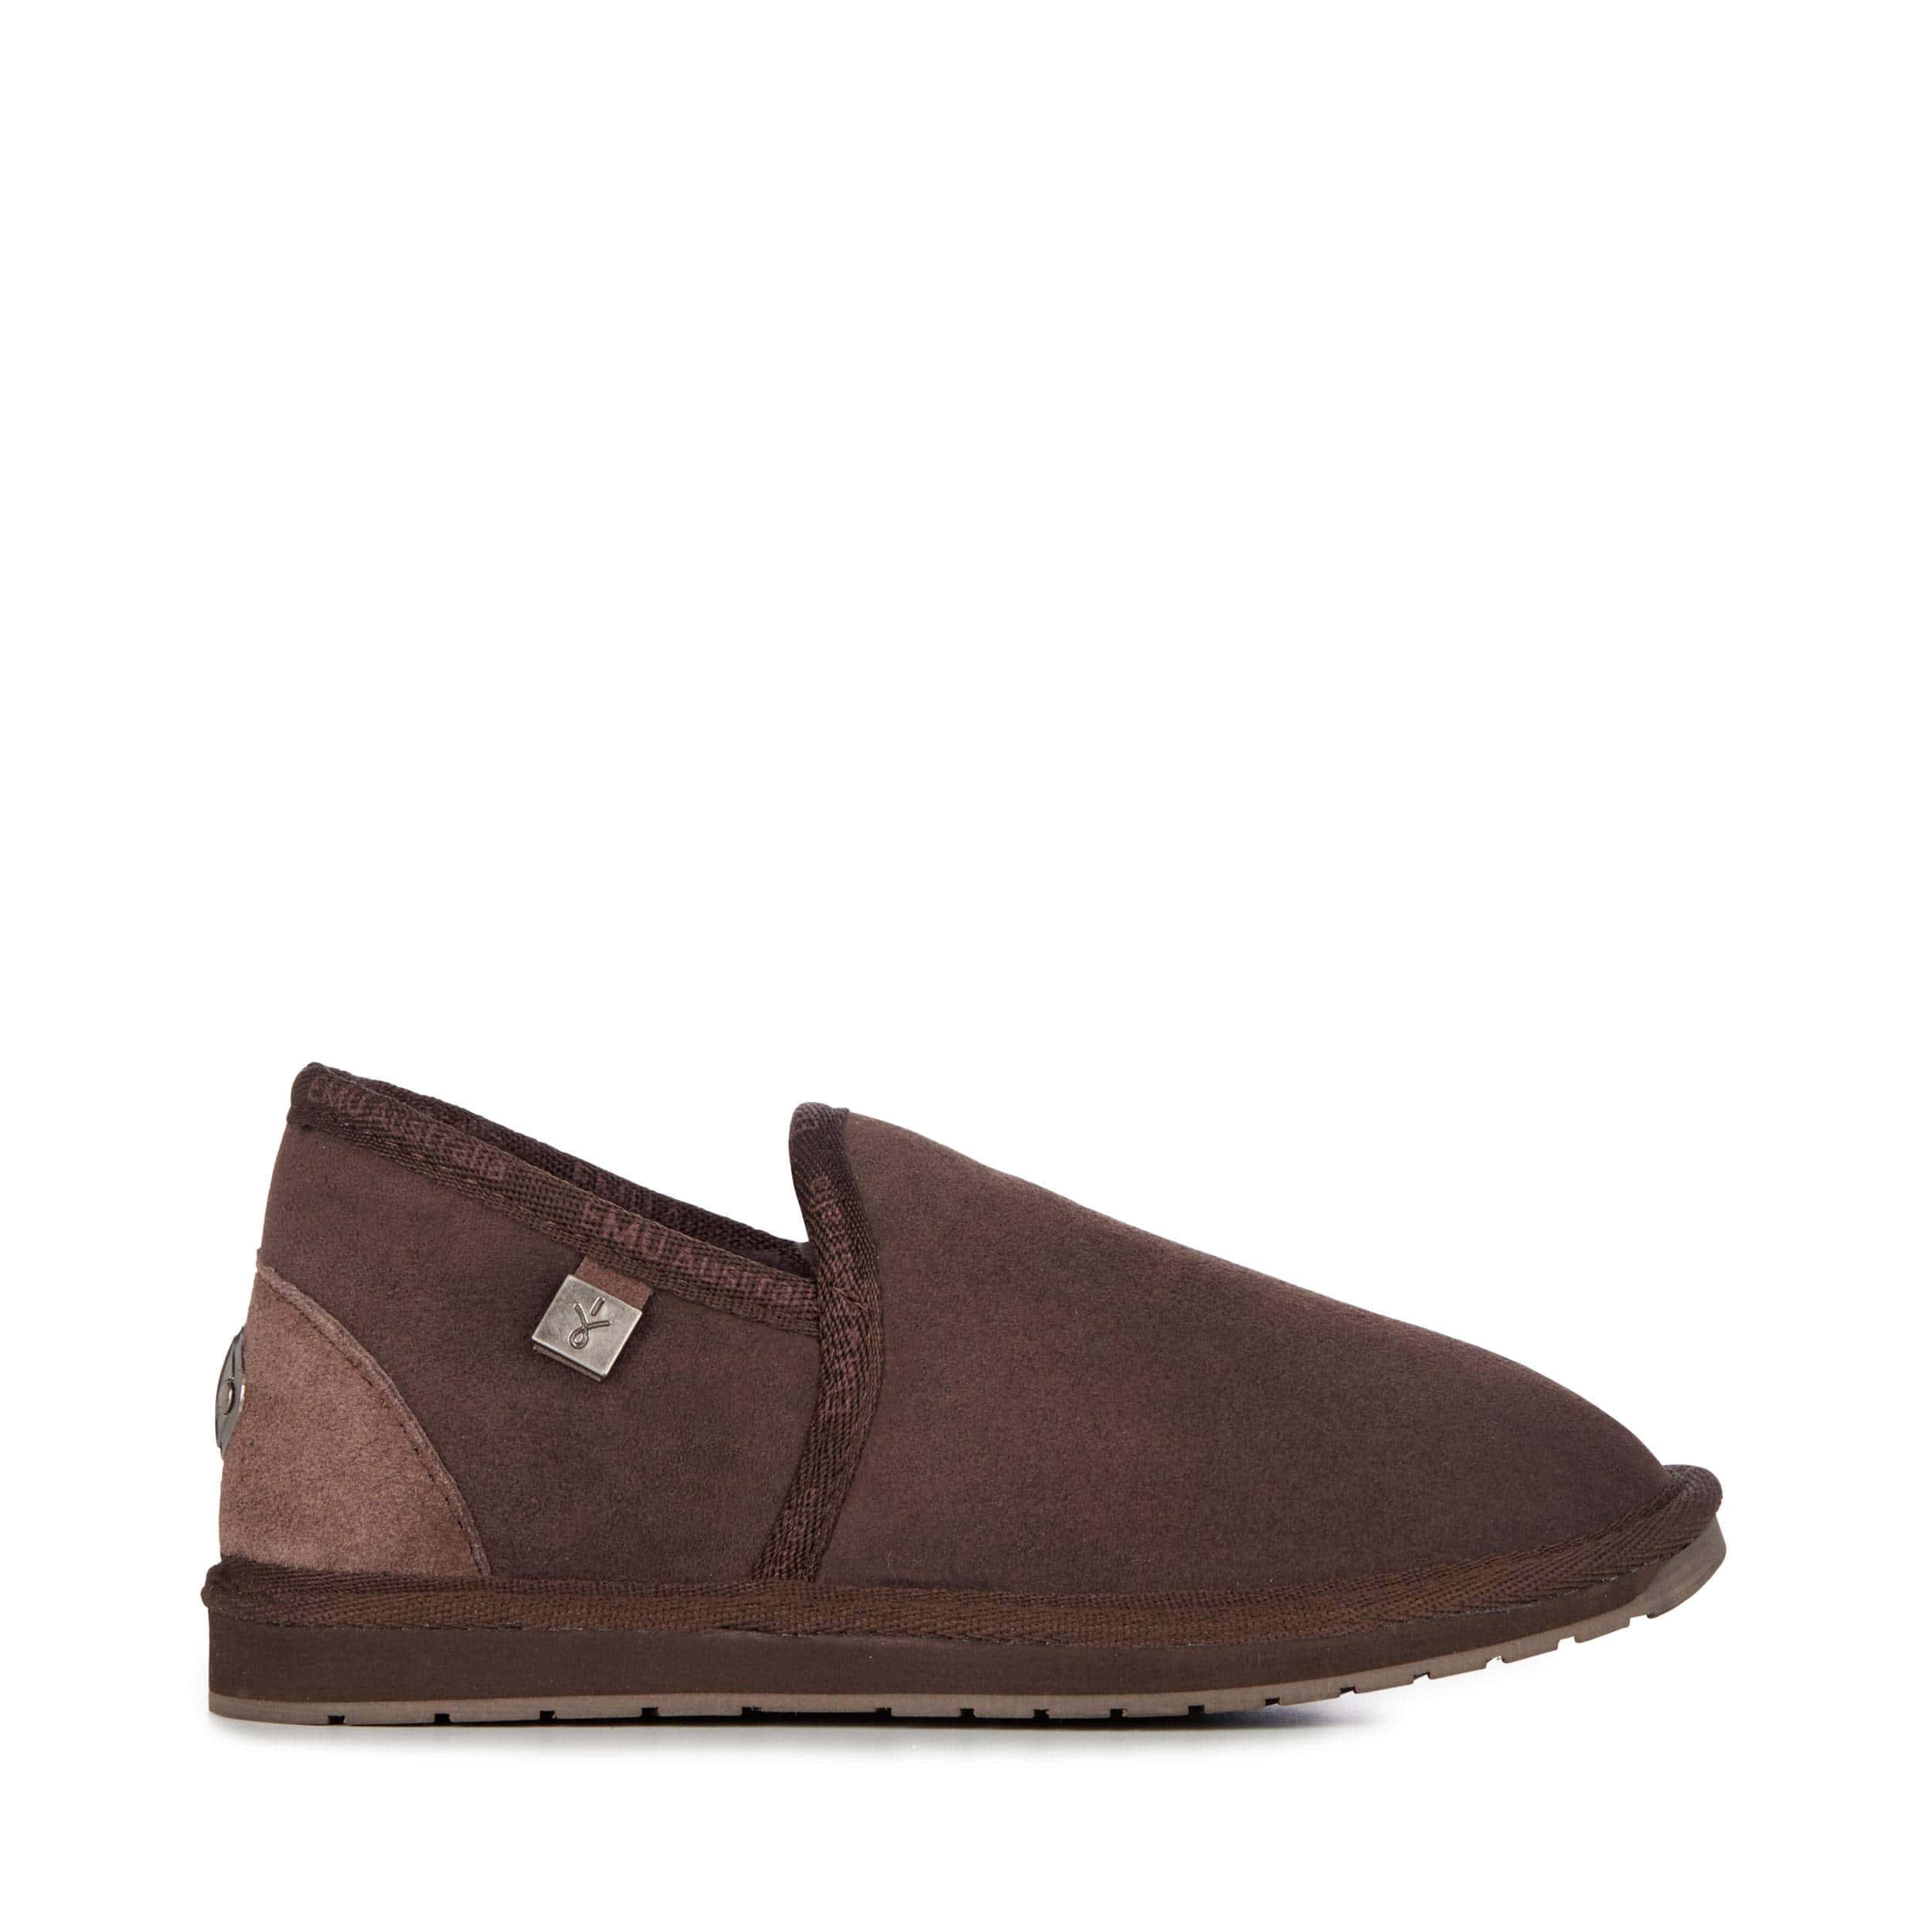 9c214718304 Emu Ashford Sheepskin Slipper